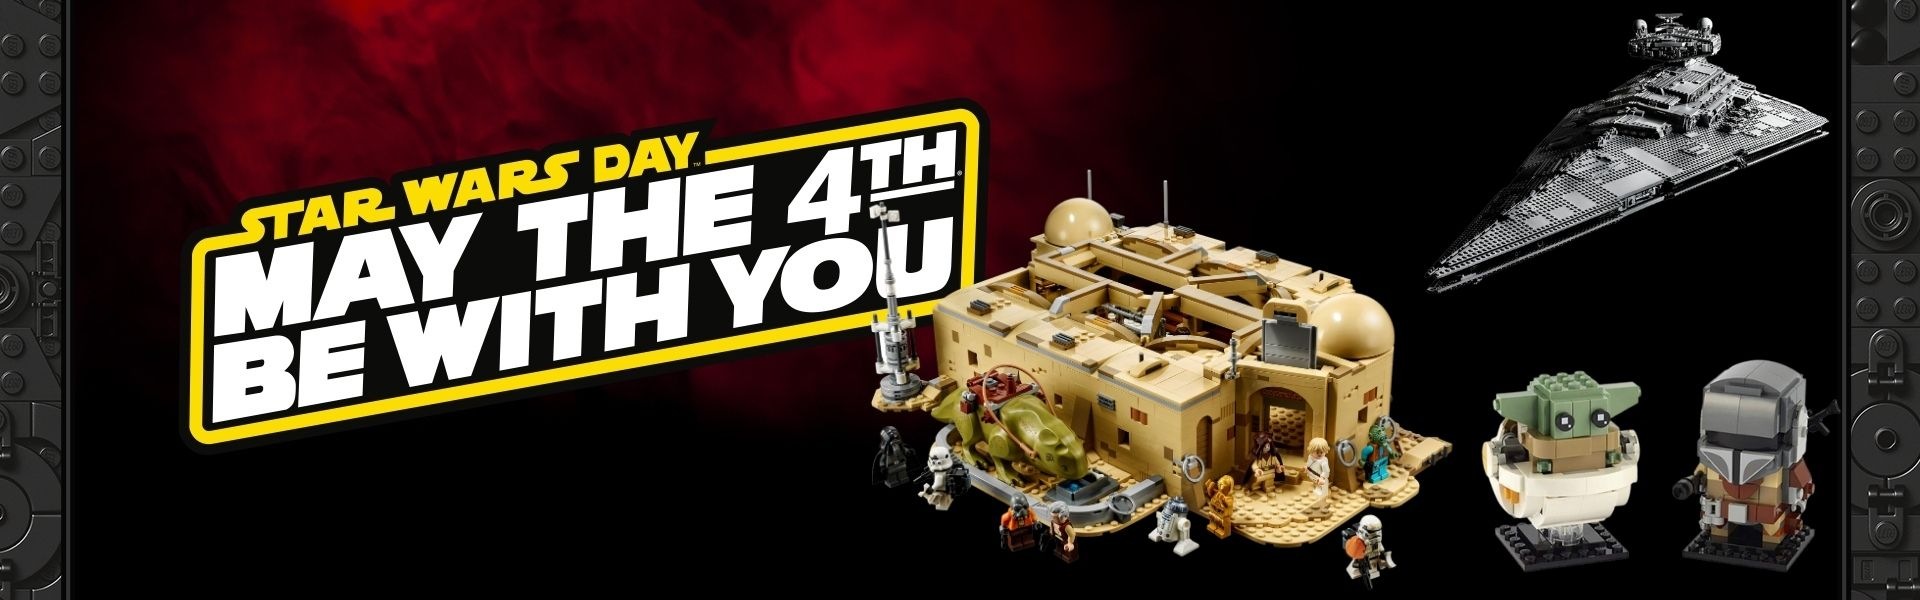 LEGO Star Wars May the 4th - gifts